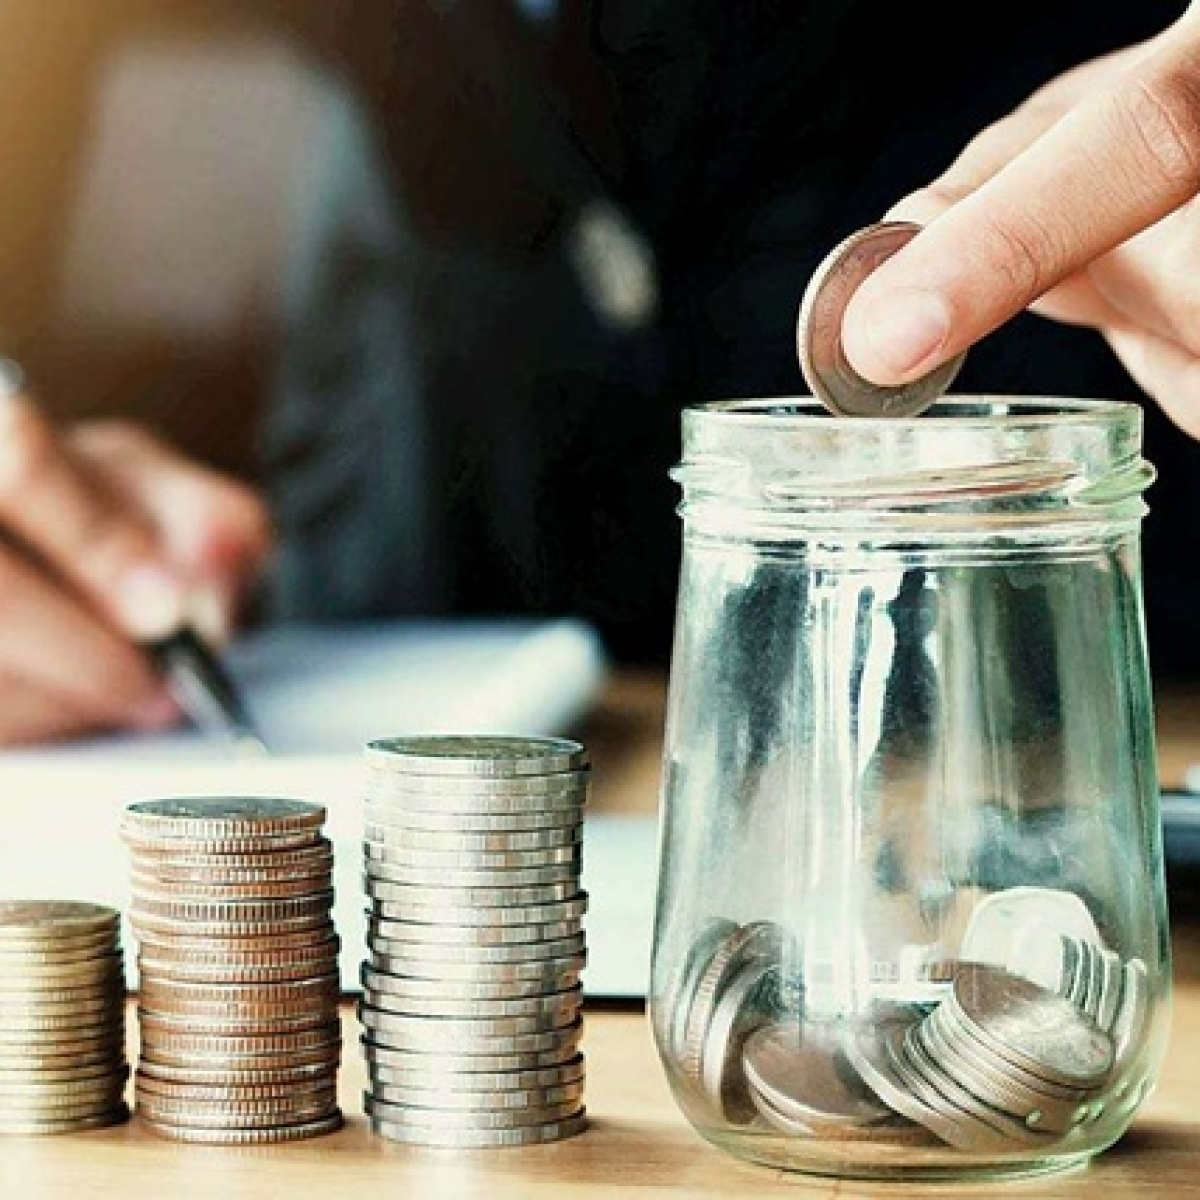 Investment matters: How much would your Rs 10,000 be worth on January 14, 2020, if you invested a year ago in stock market, silver or gold?